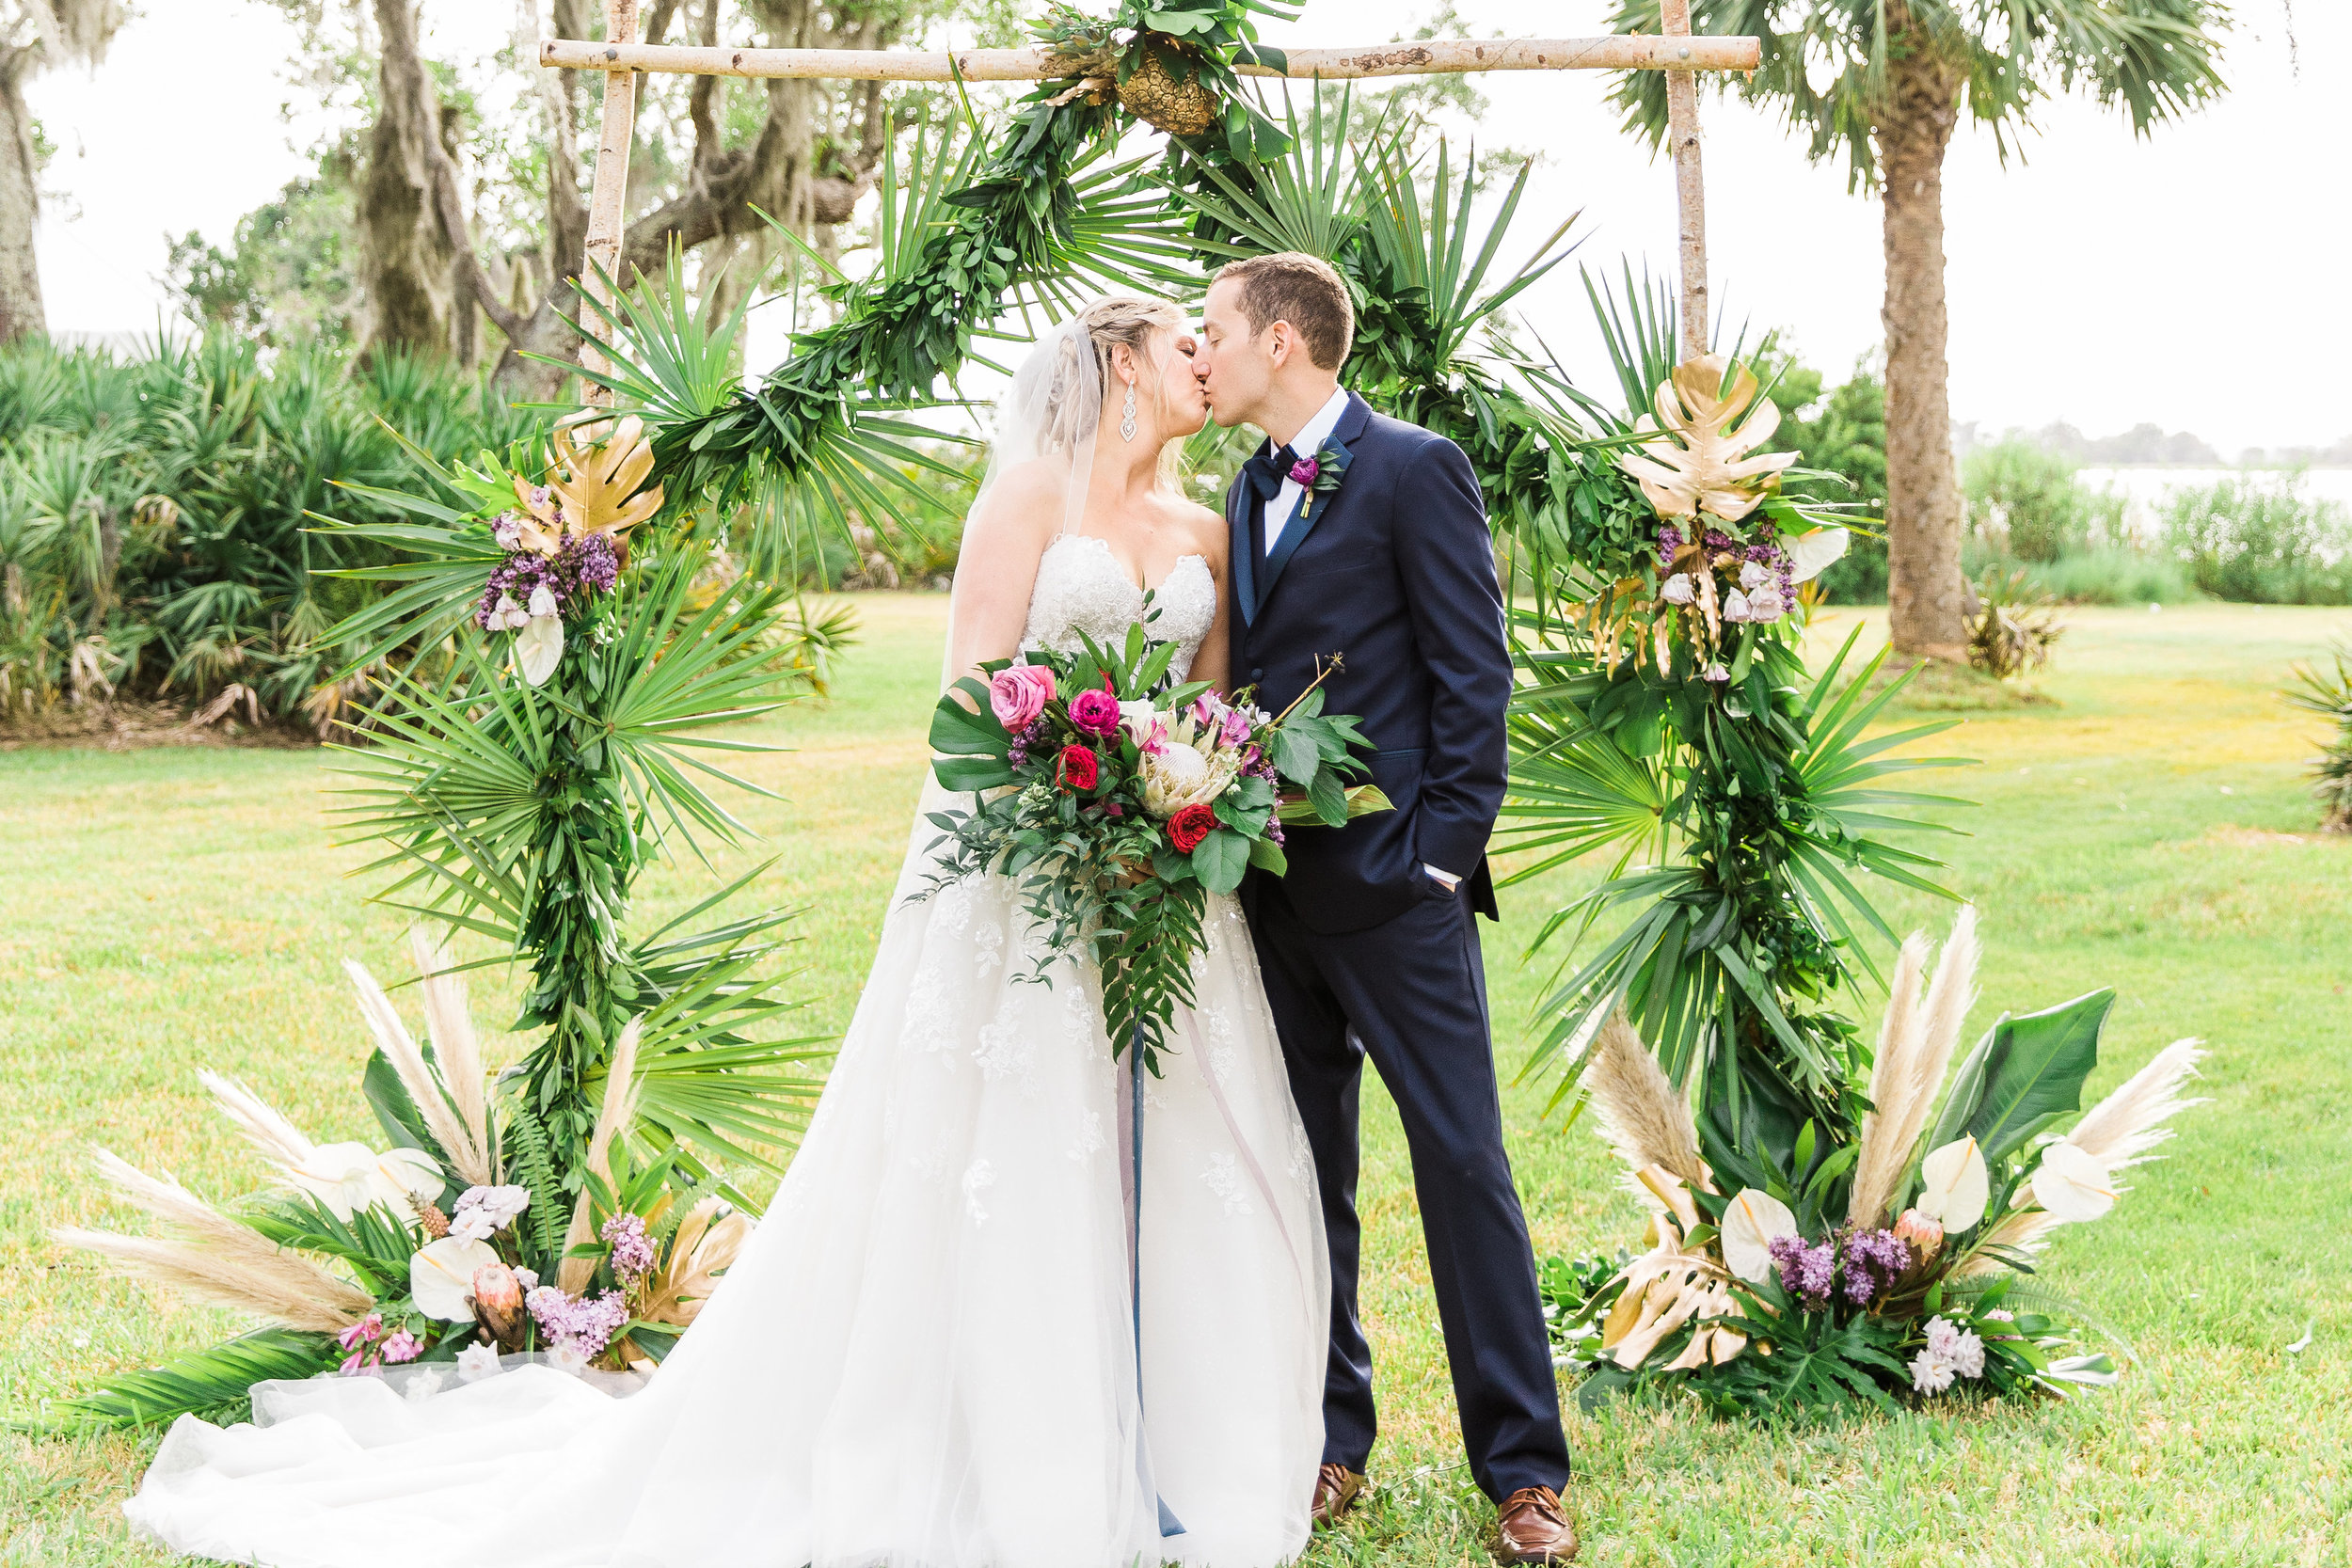 savannah-bridal-shop-i-and-b-couple-gretchen-and-alex-fun-and-unique-tropical-wedding-at-captains-bluff-st-simons-island-wedding-marianne-lucille-photography-28.jpg